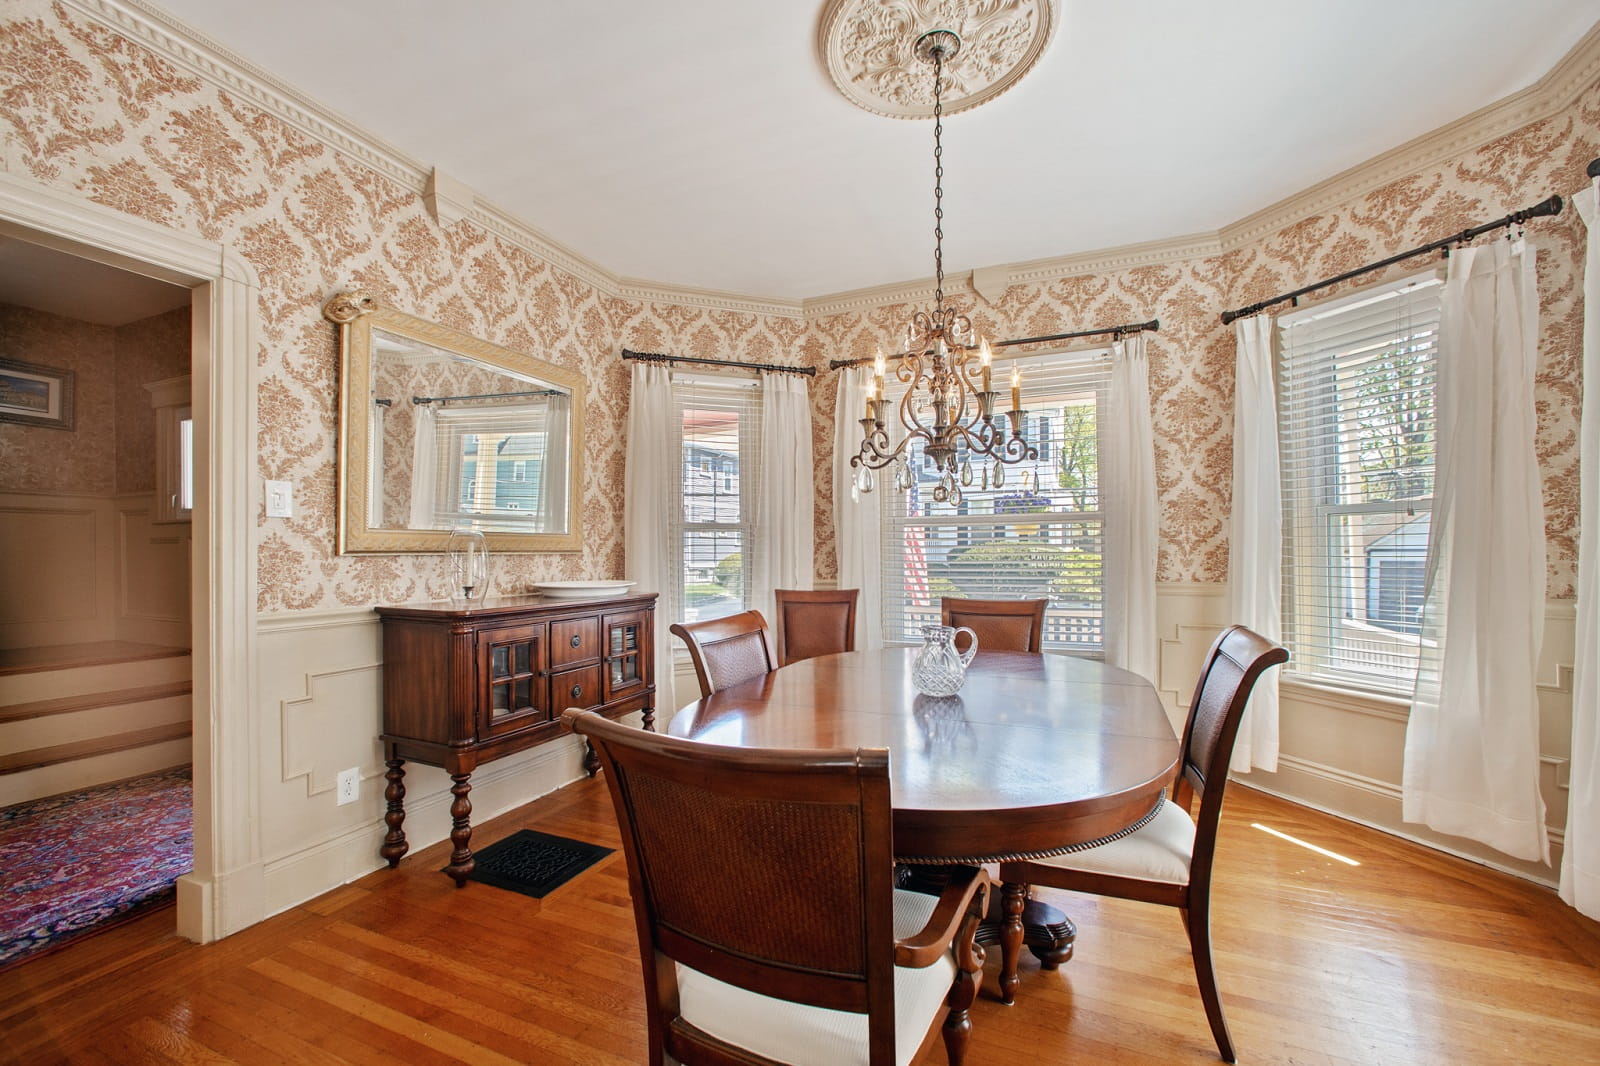 Real Estate Photography in Boston - MA - USA - Dining Area View